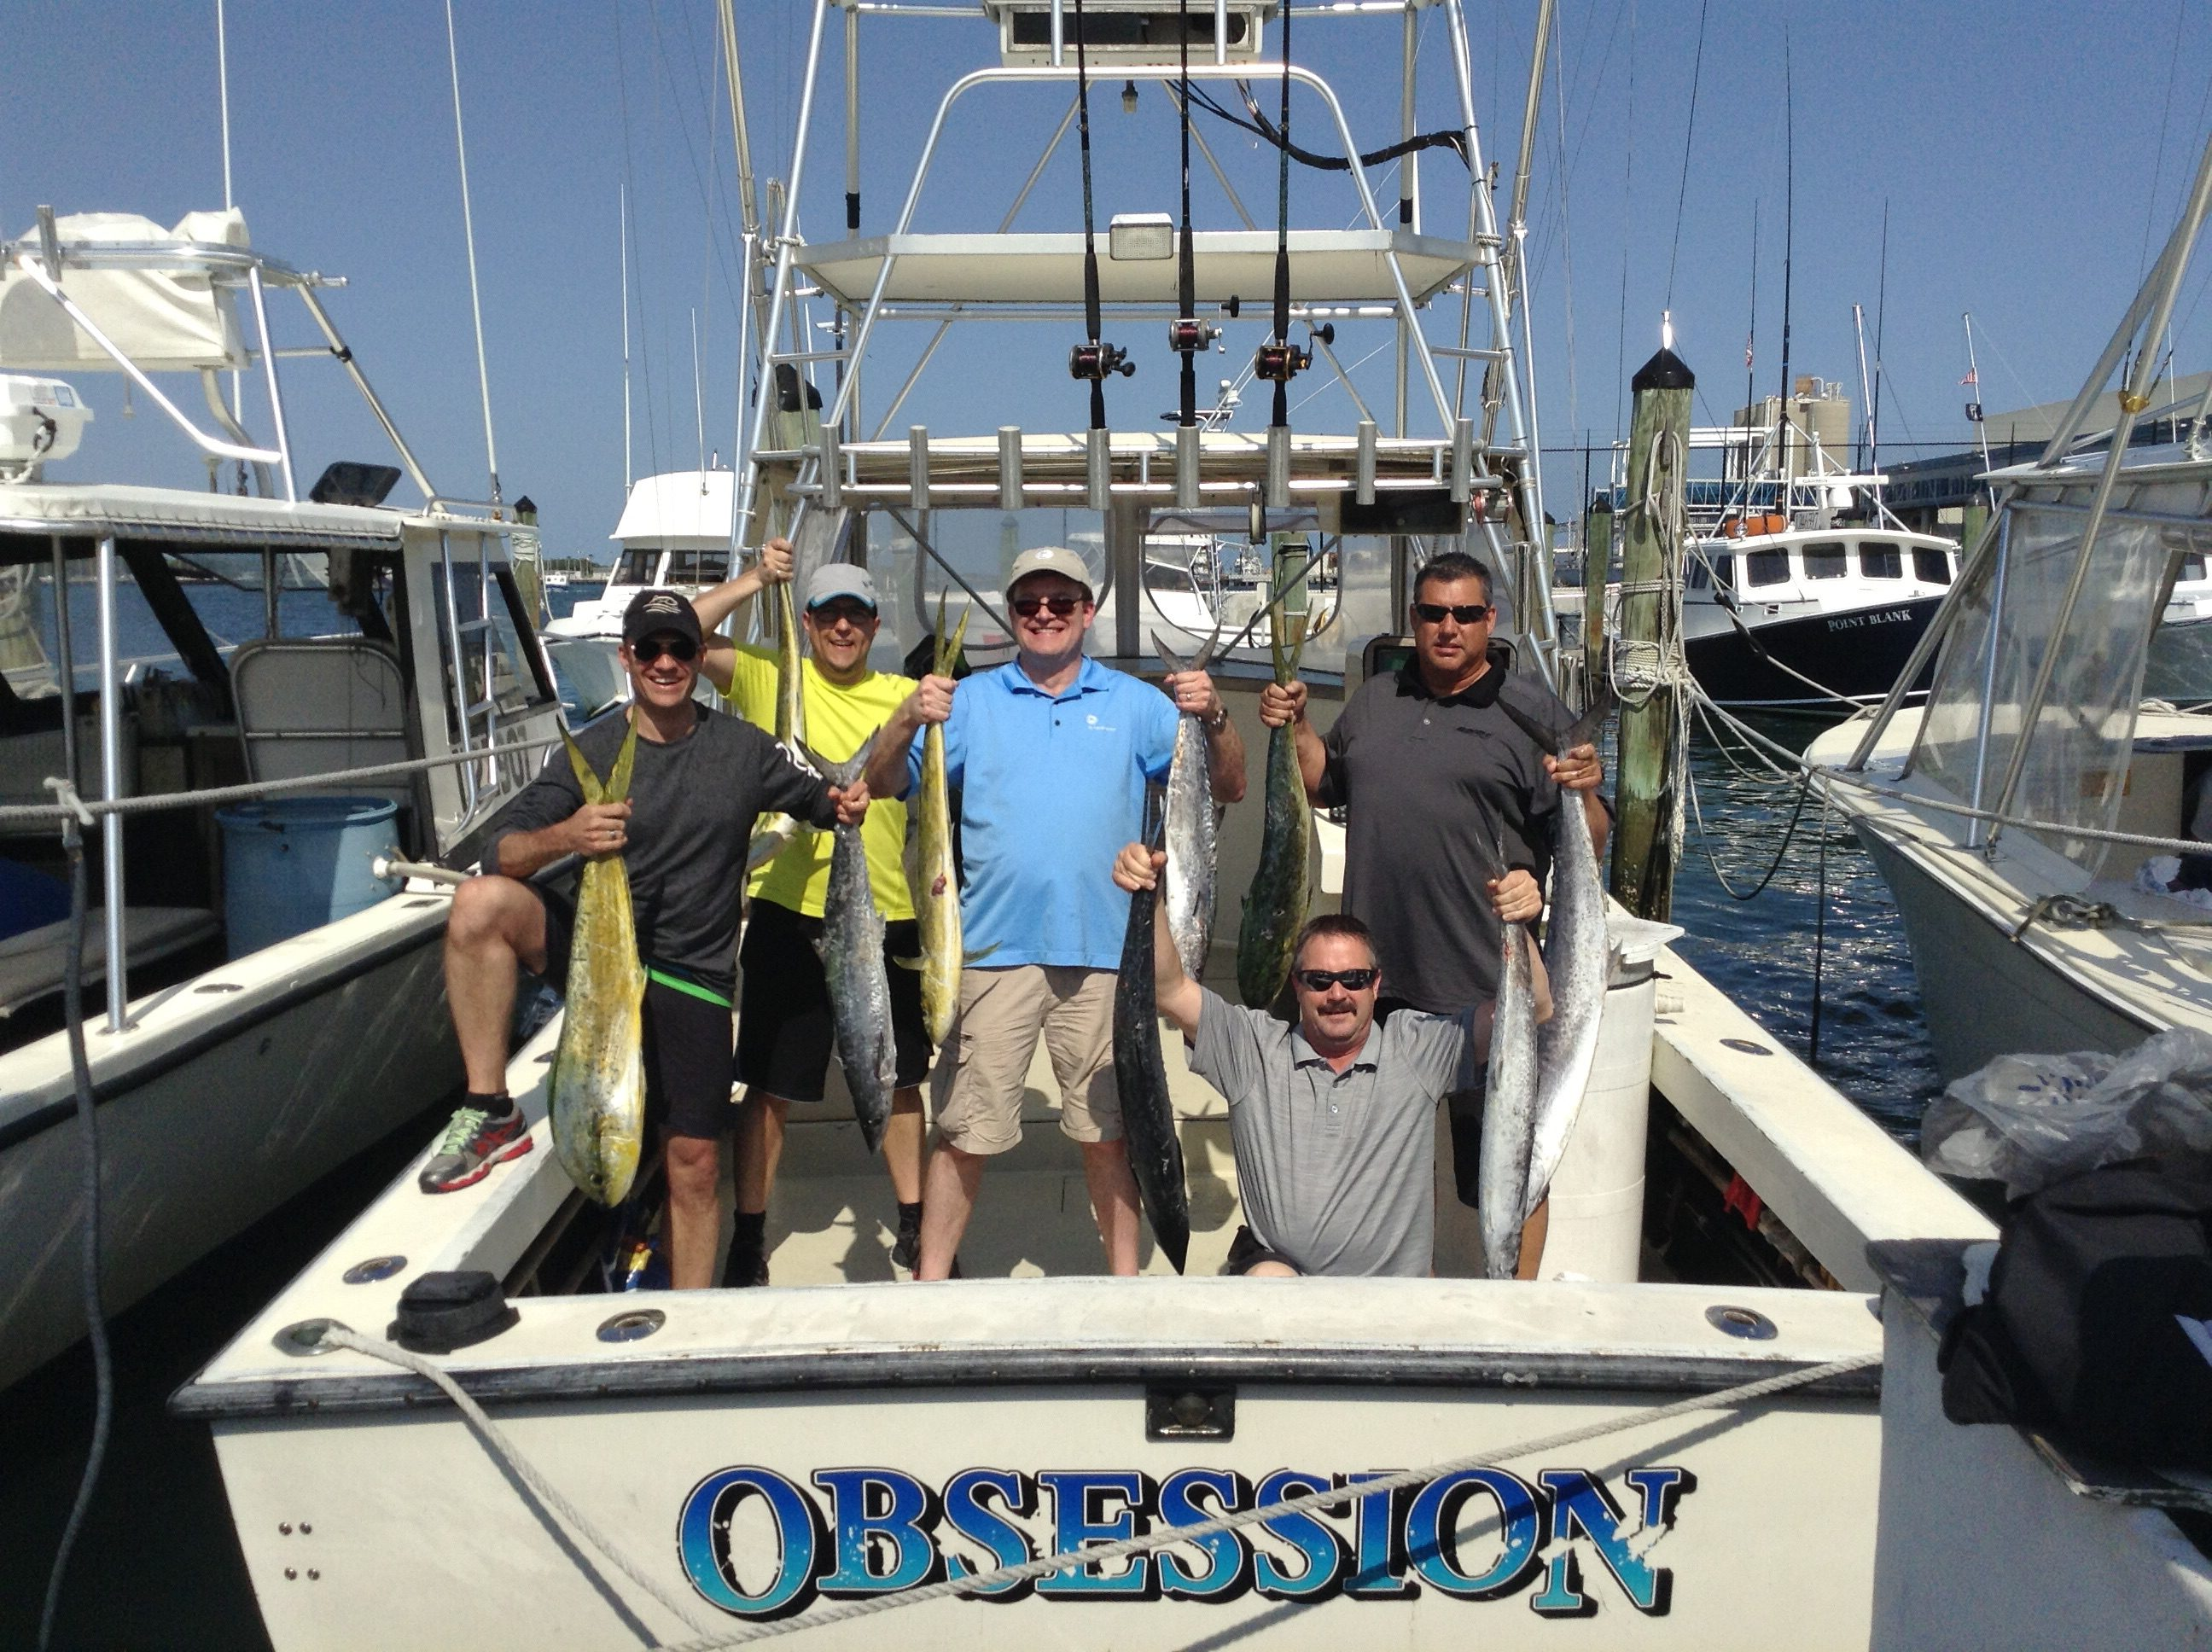 5 Boat Large Party Charter Fishing